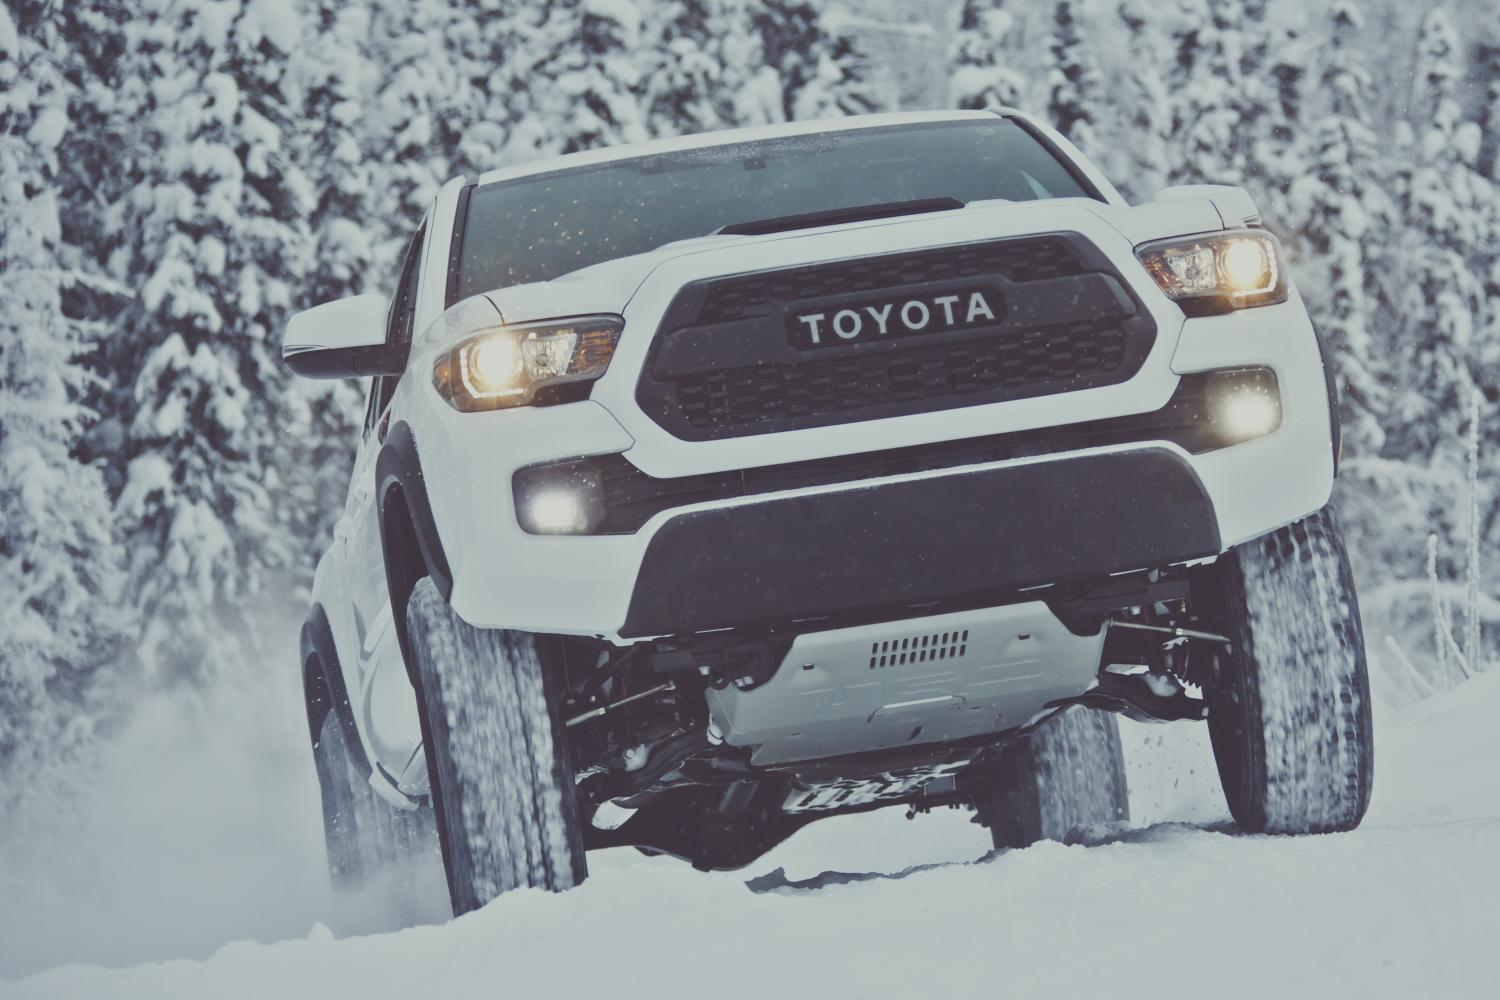 Toyota Tacoma One Of S Top Ing Vehicles In The Usa 2017